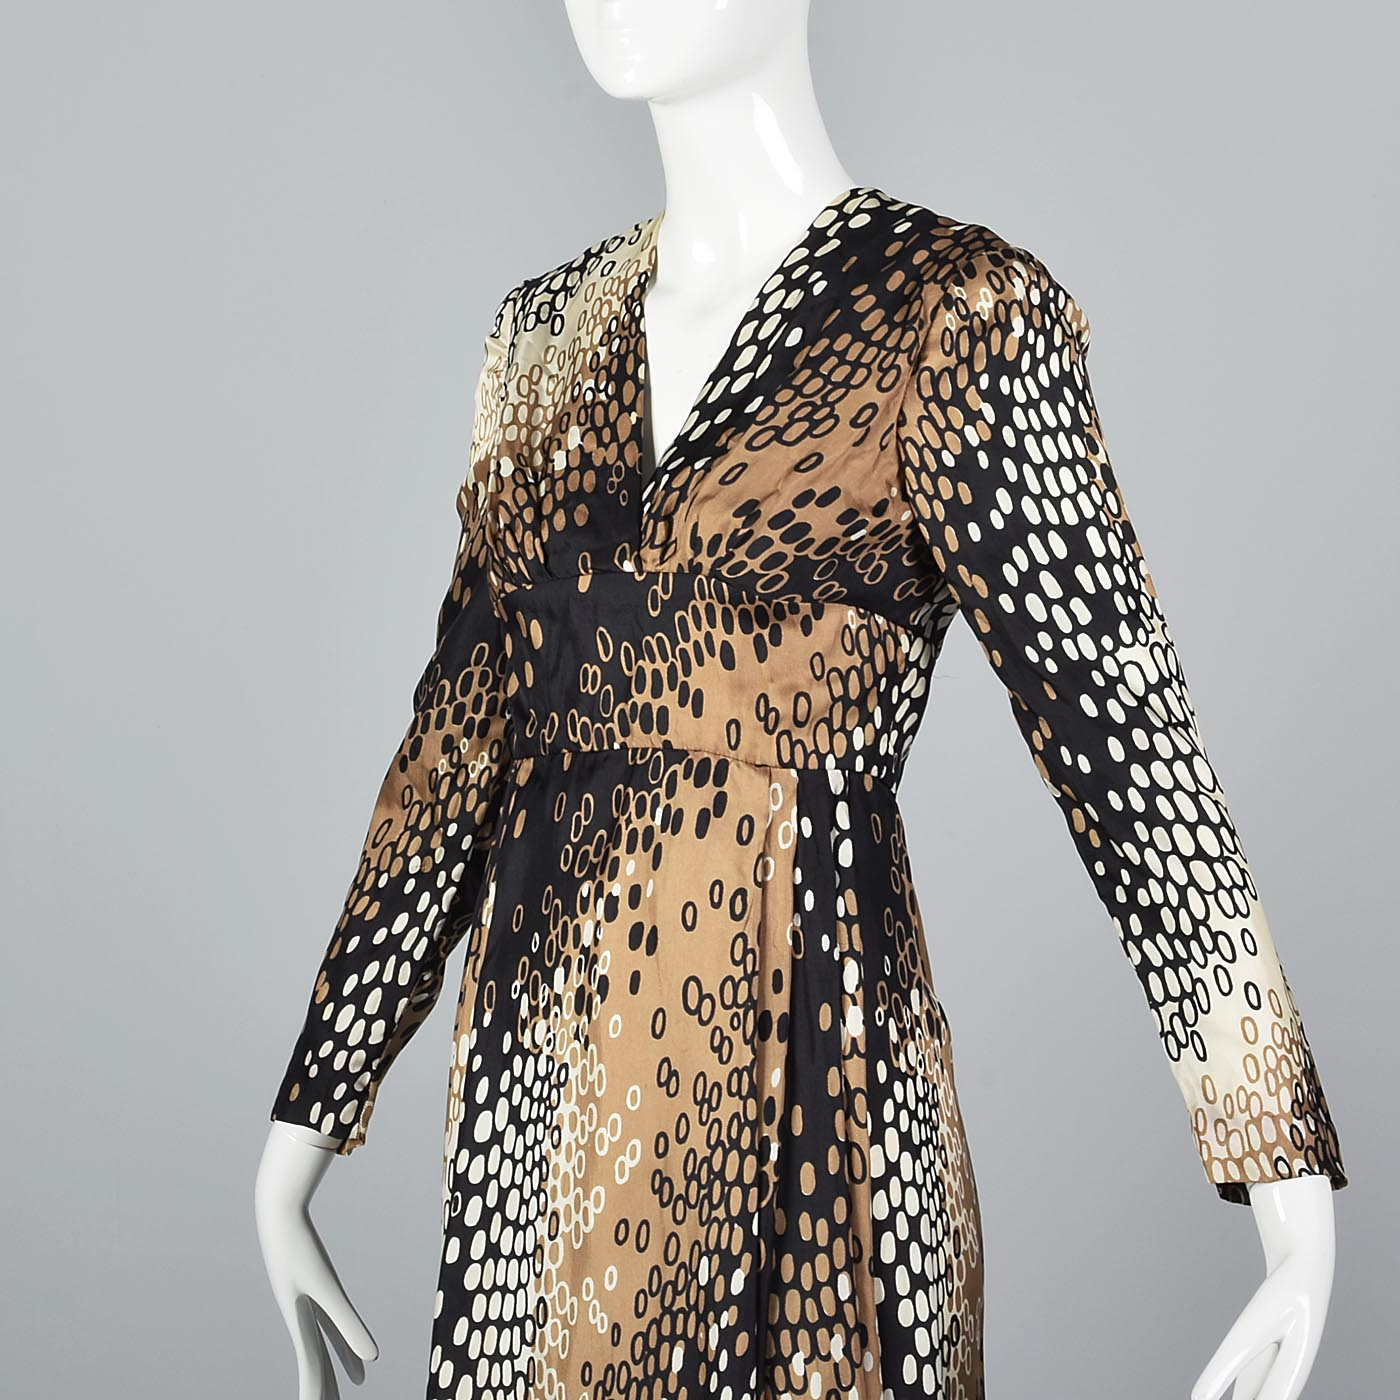 1960s Silk Dress with White, Tan, and Black Op Art Print